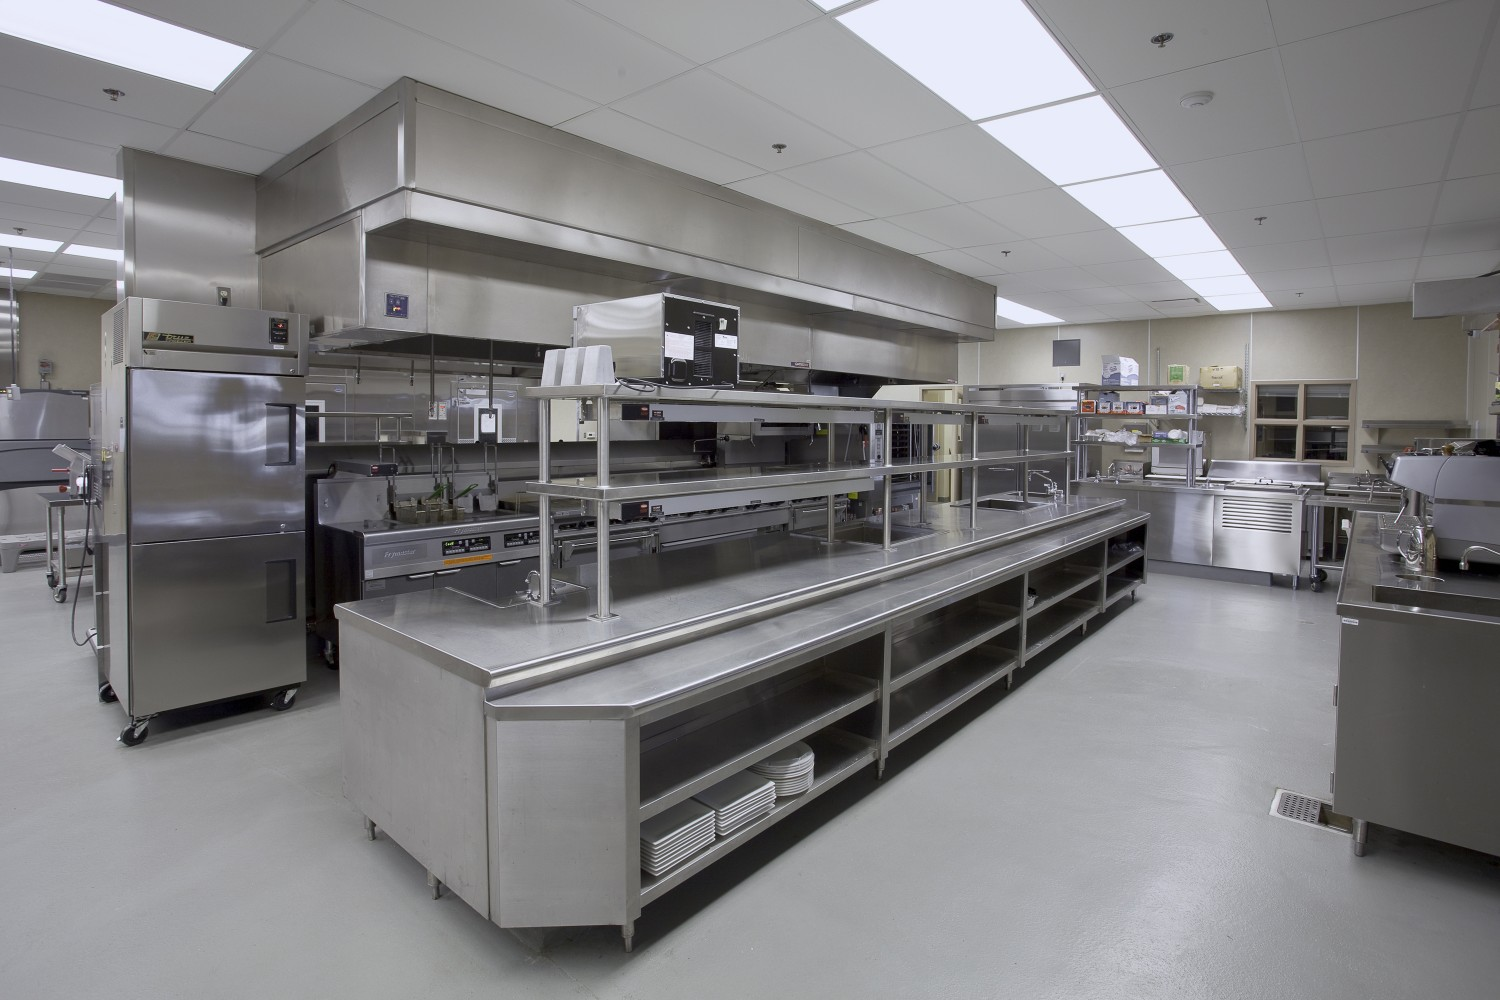 Commercial Kitchen Equipment Planning